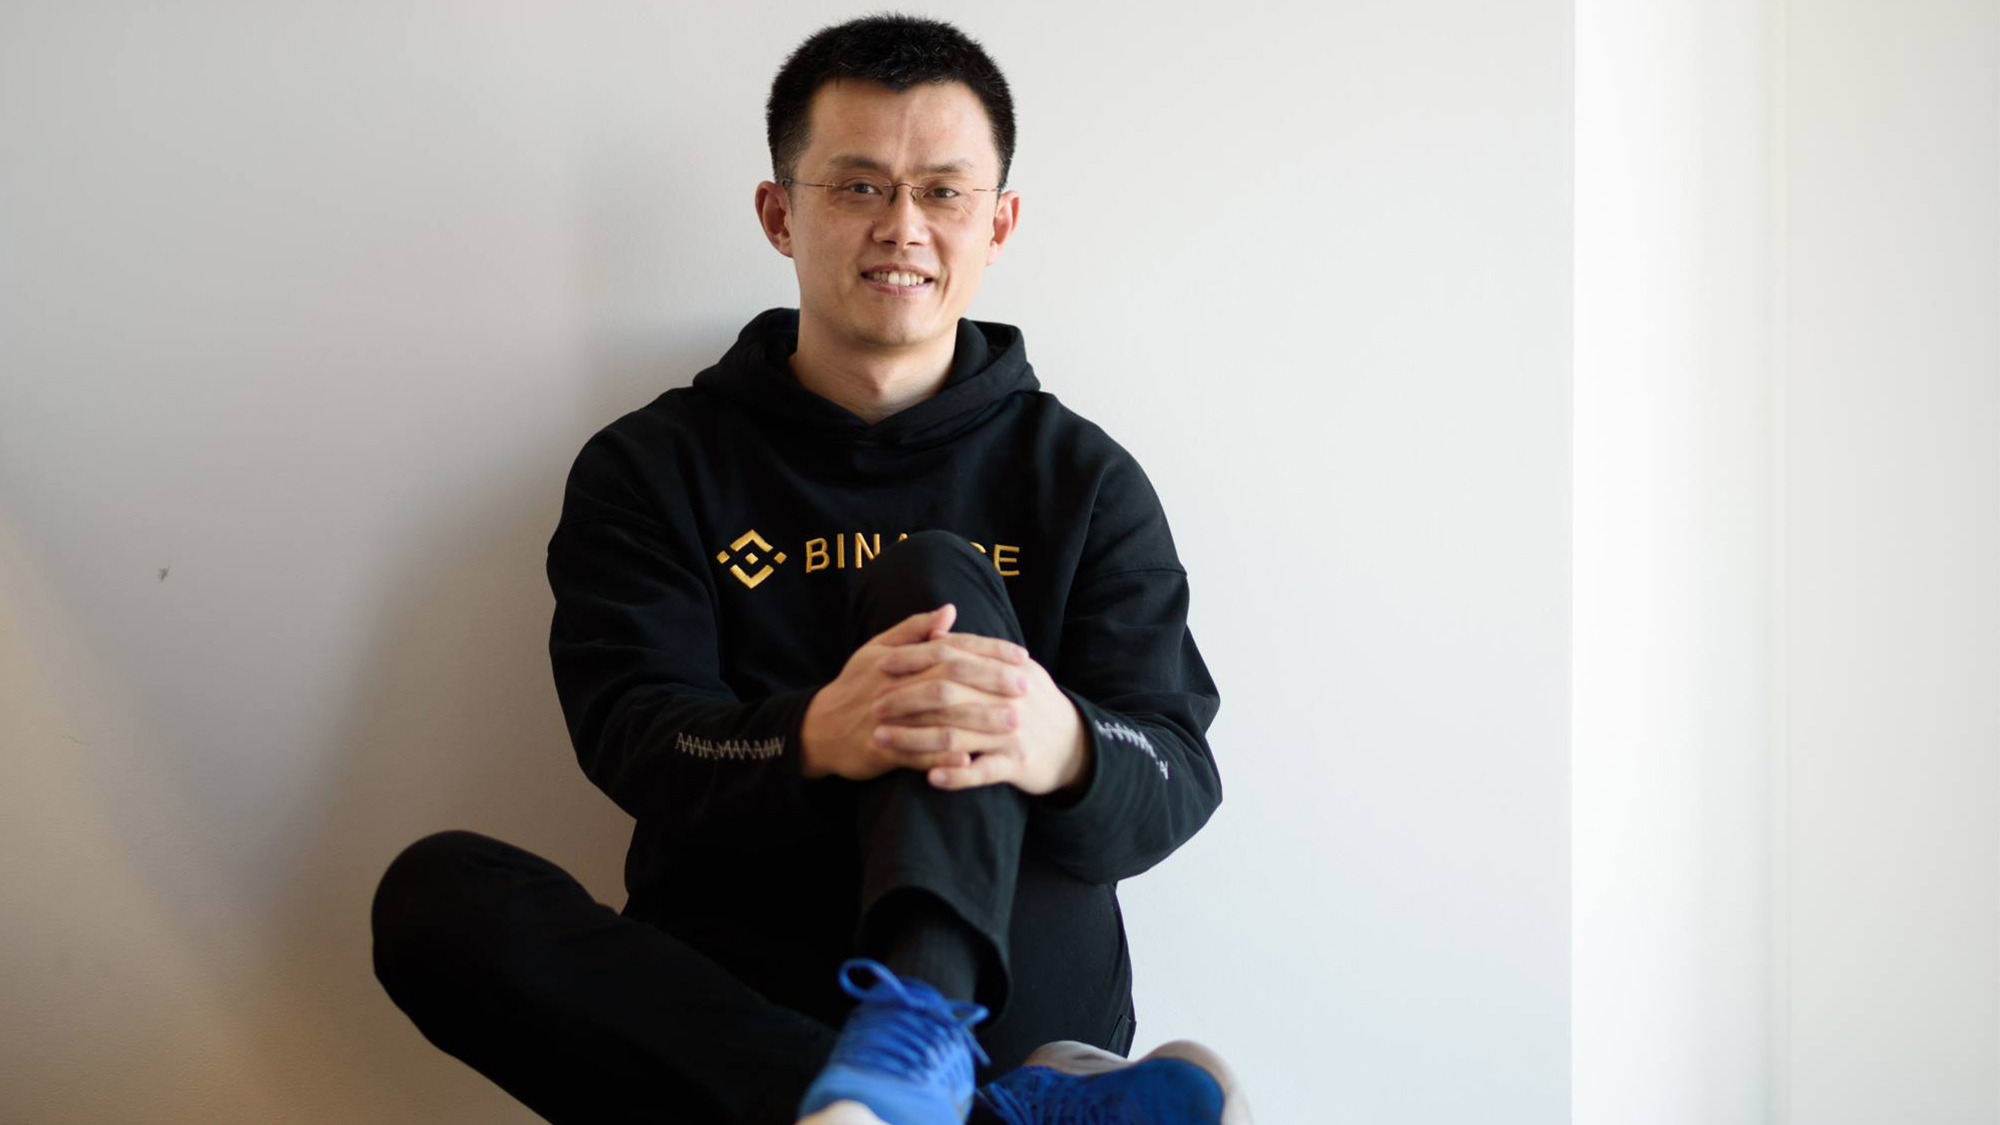 binance krypto exchange will eine milliarde dollar in. Black Bedroom Furniture Sets. Home Design Ideas